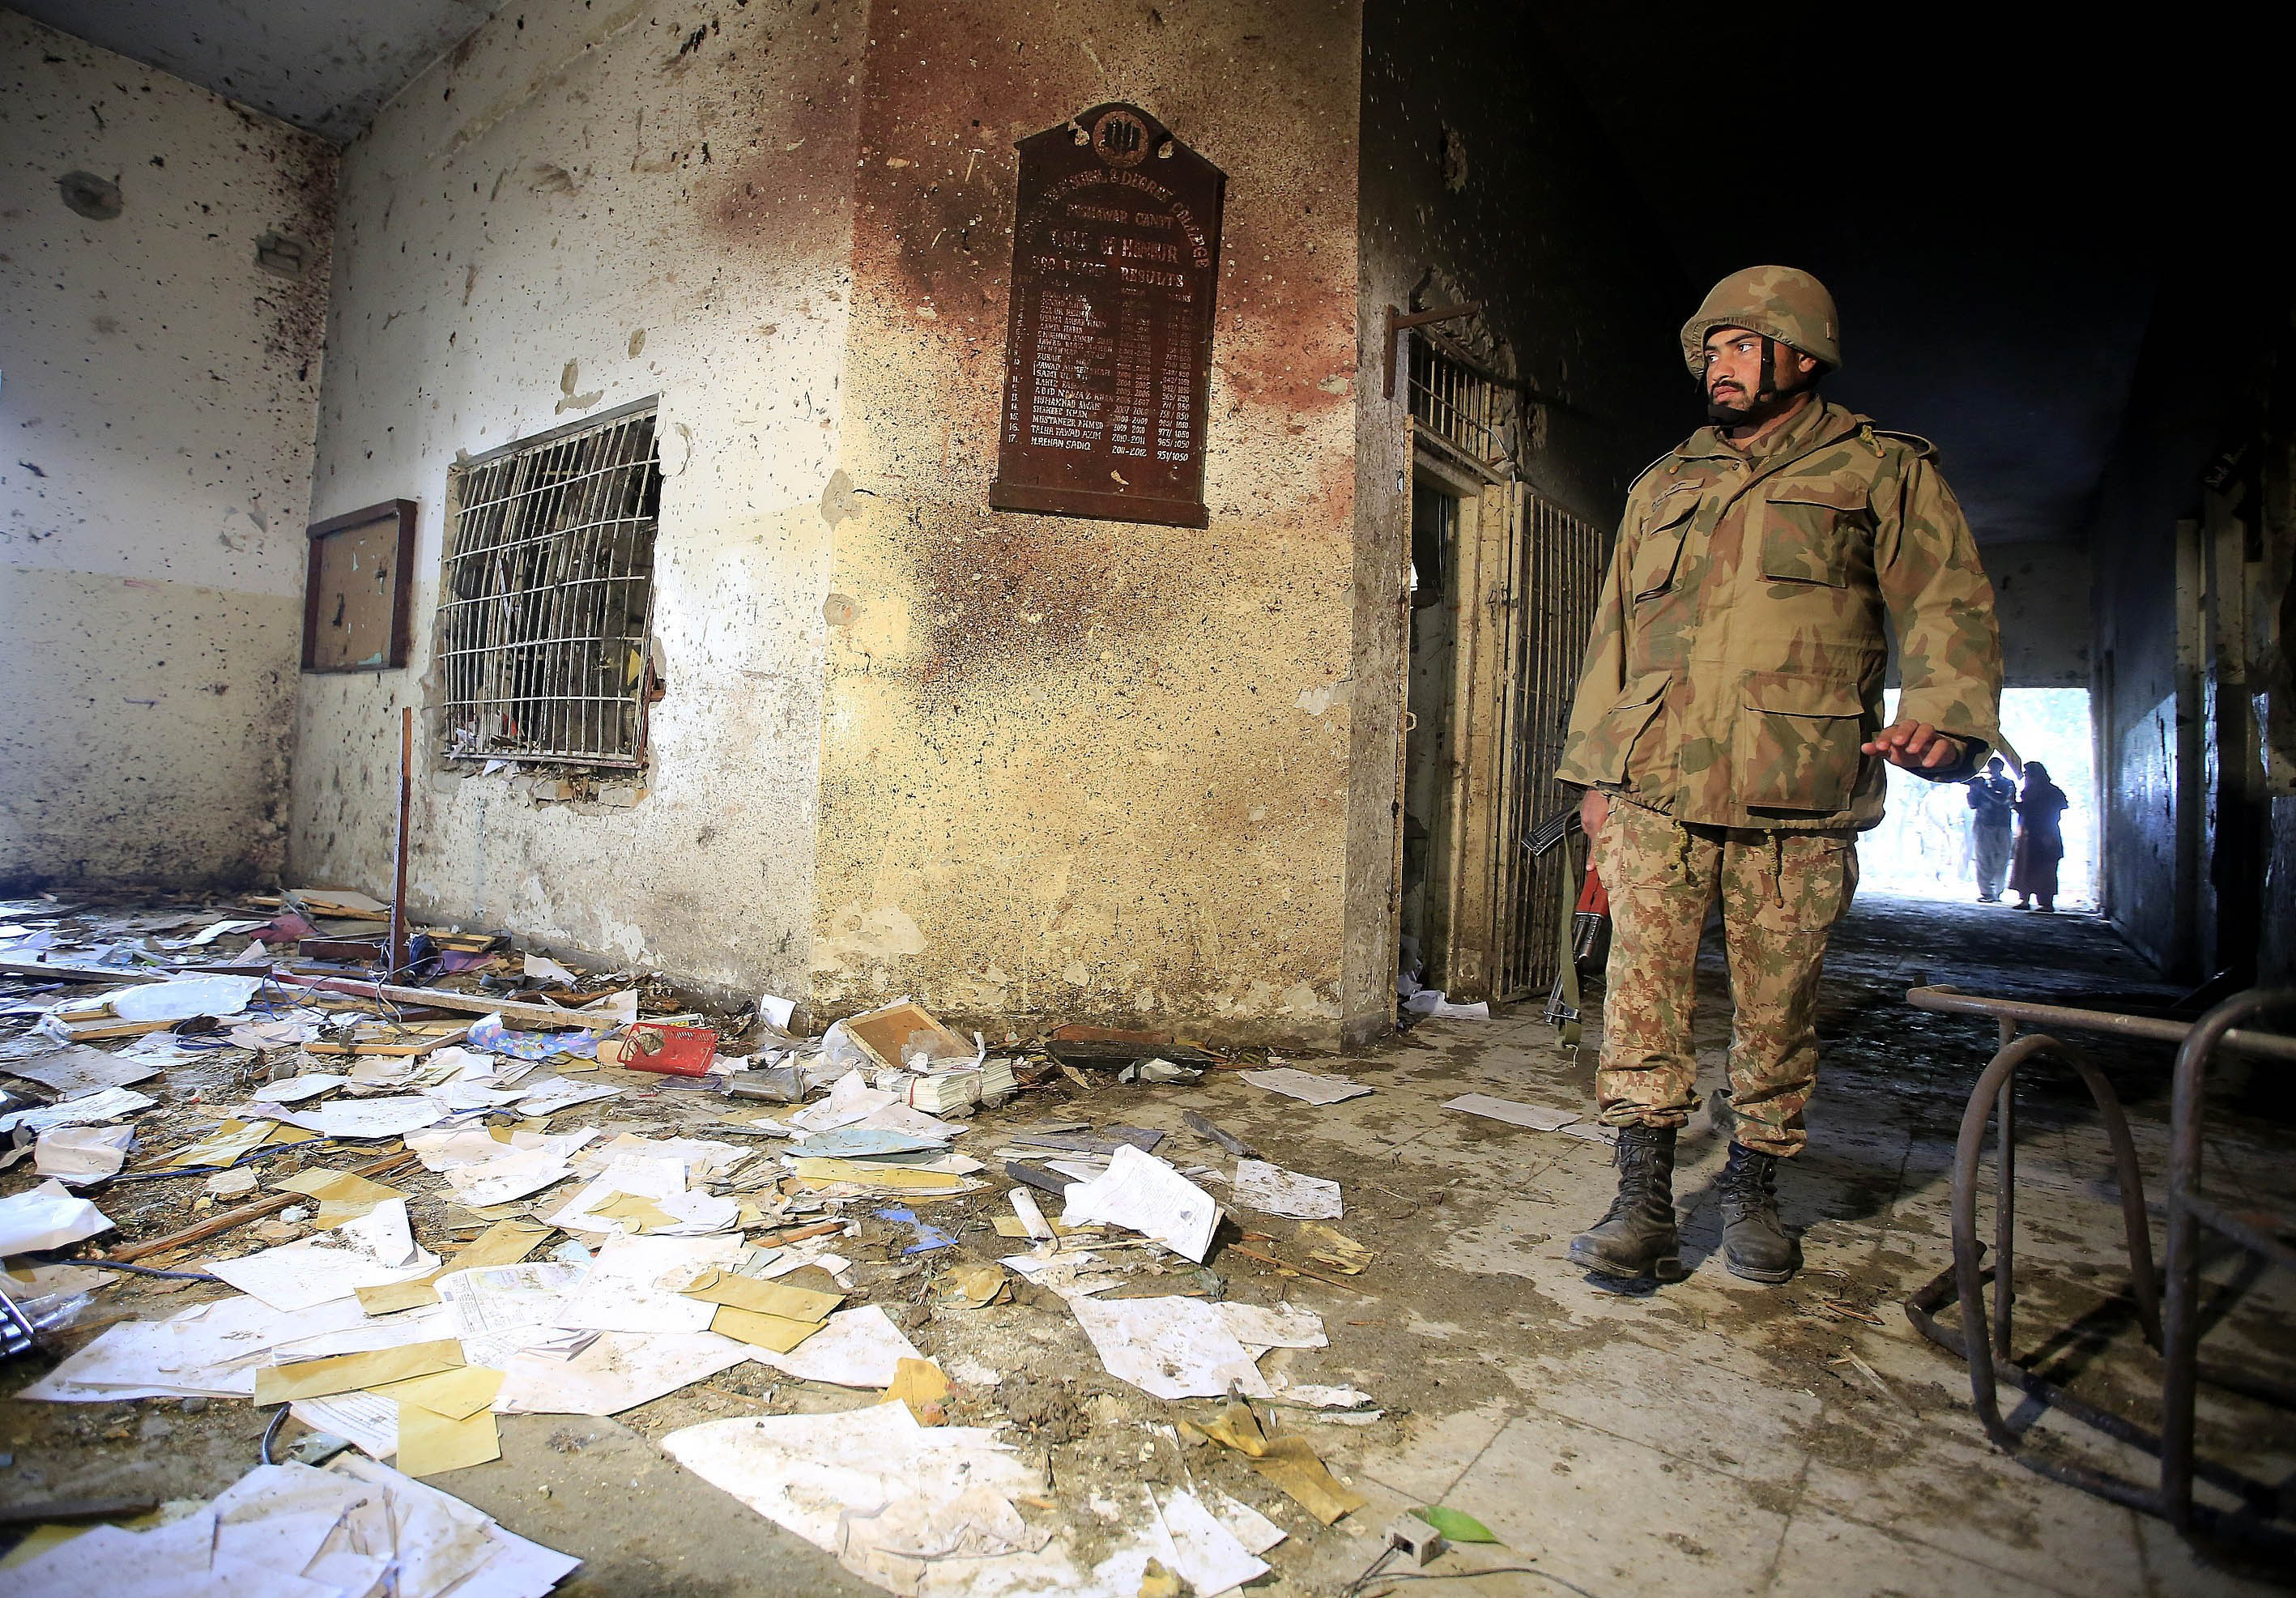 A view of the debris of the army-run school that was attacked by Taliban on Tuesday, in northwestern city of Peshawar, Pakistan, on December 17, 2014.